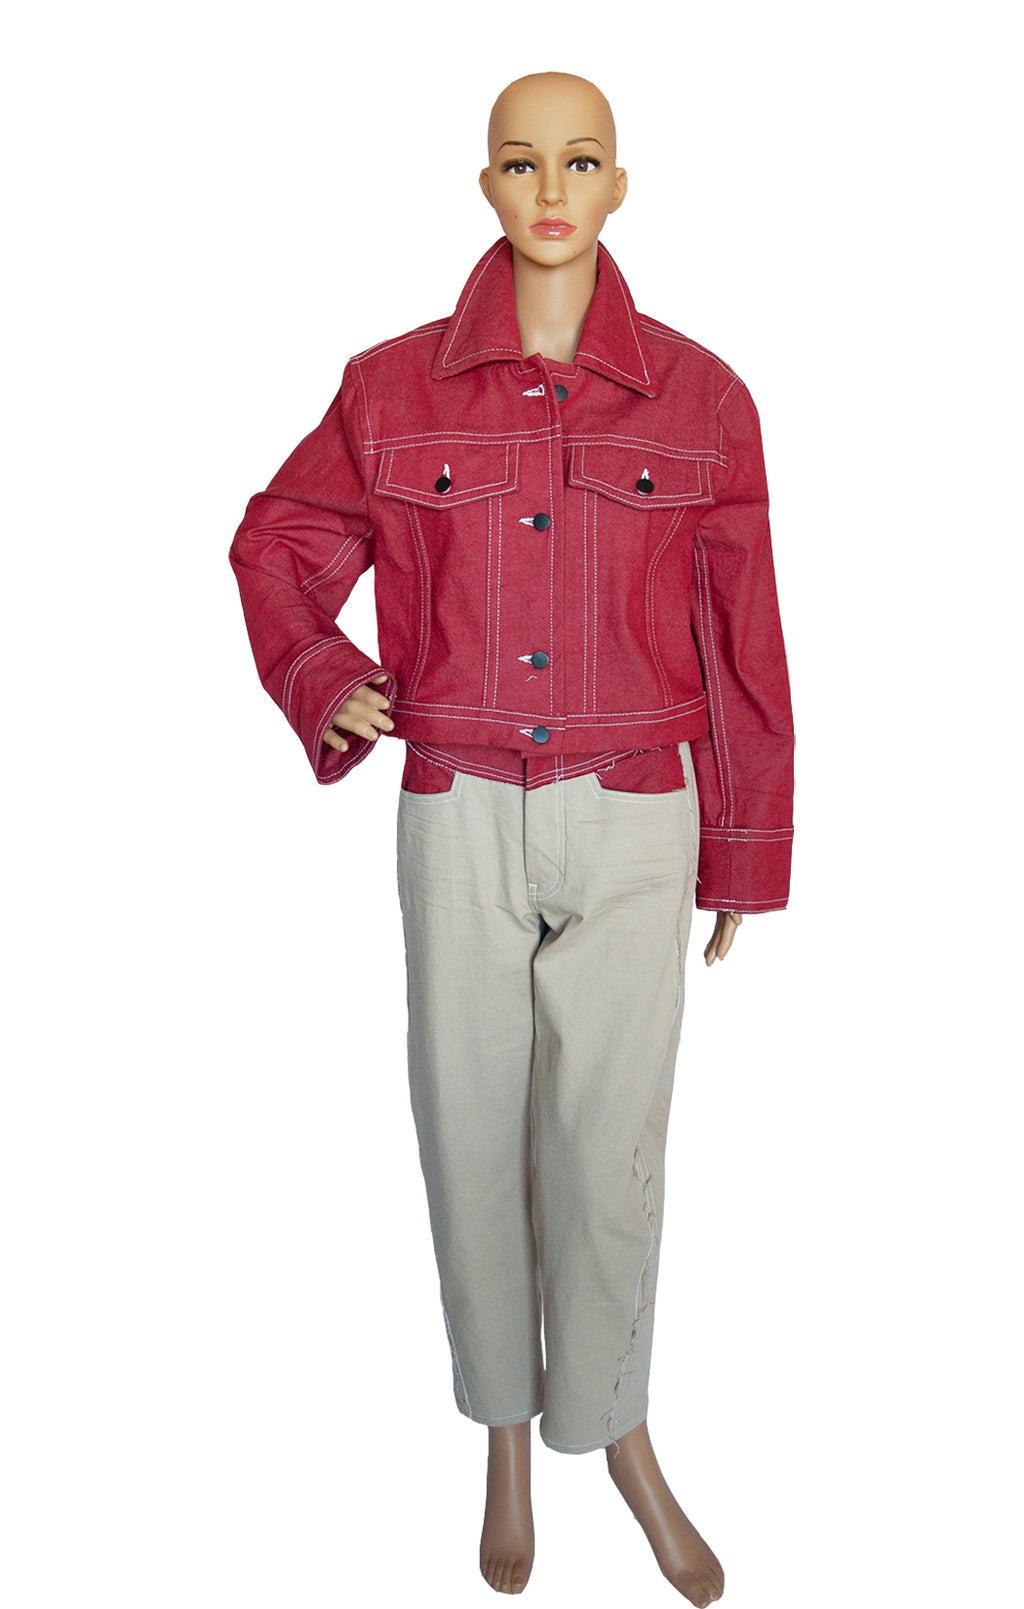 Front view of COLOVOS Matching Jacket and Pant Jacket Size: M, Pant Size: Waist 29 in.